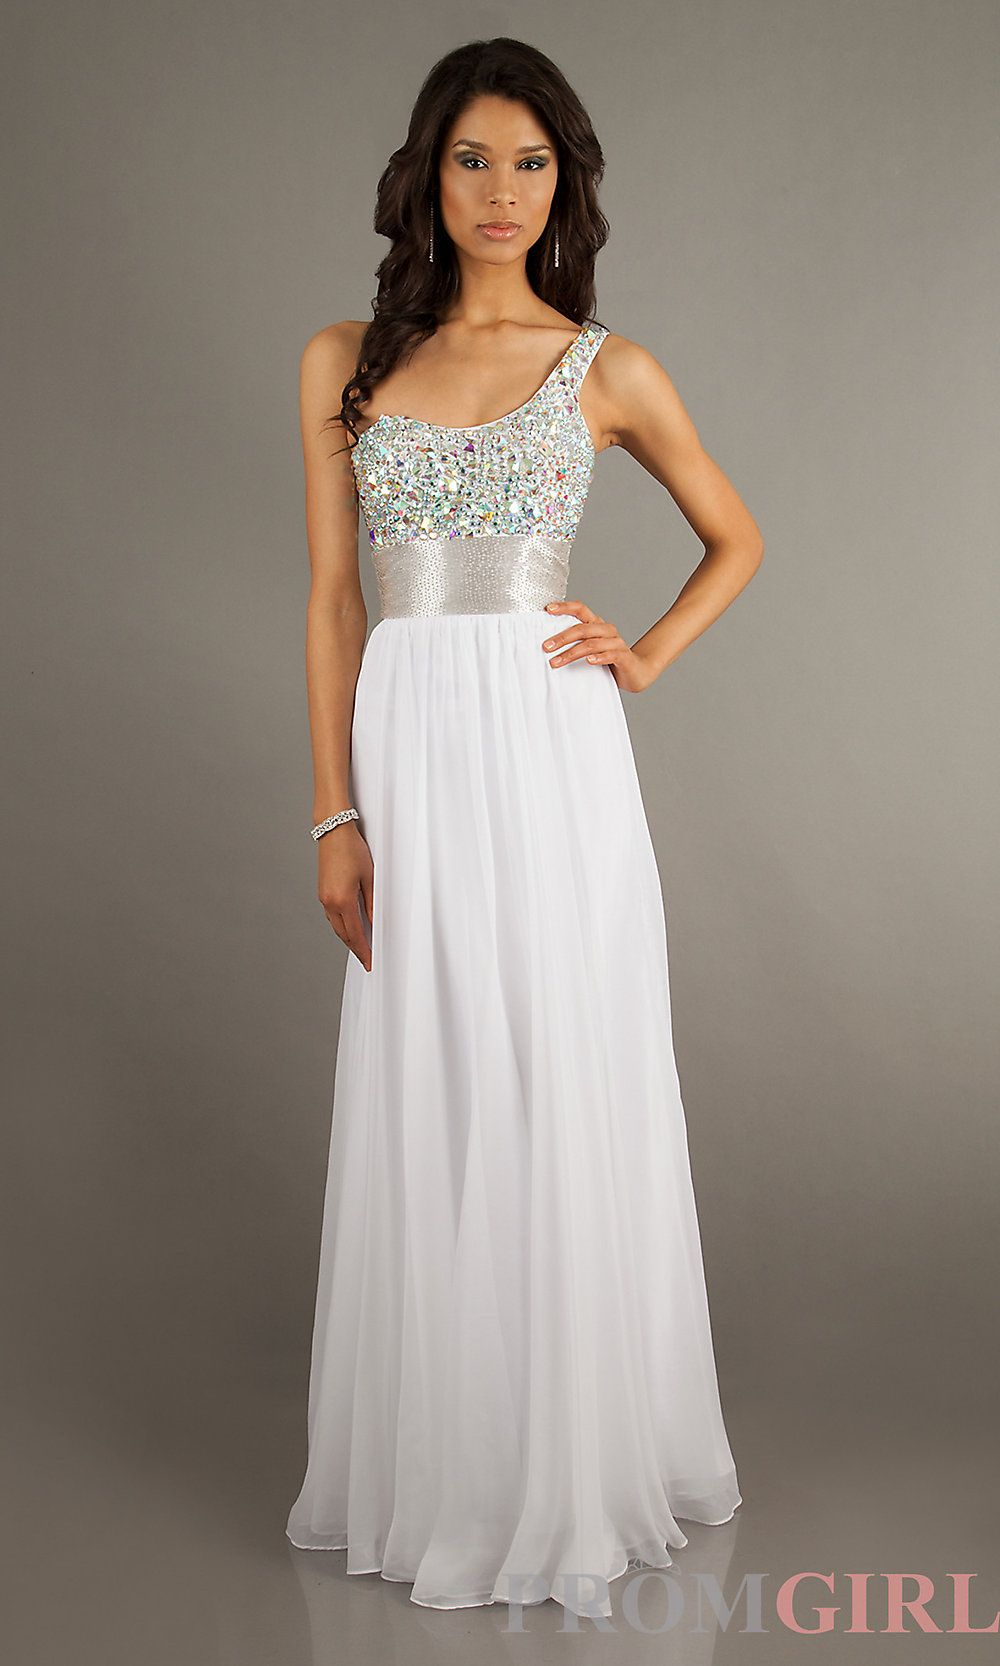 Prom dresses celebrity dresses sexy evening gowns promgirl